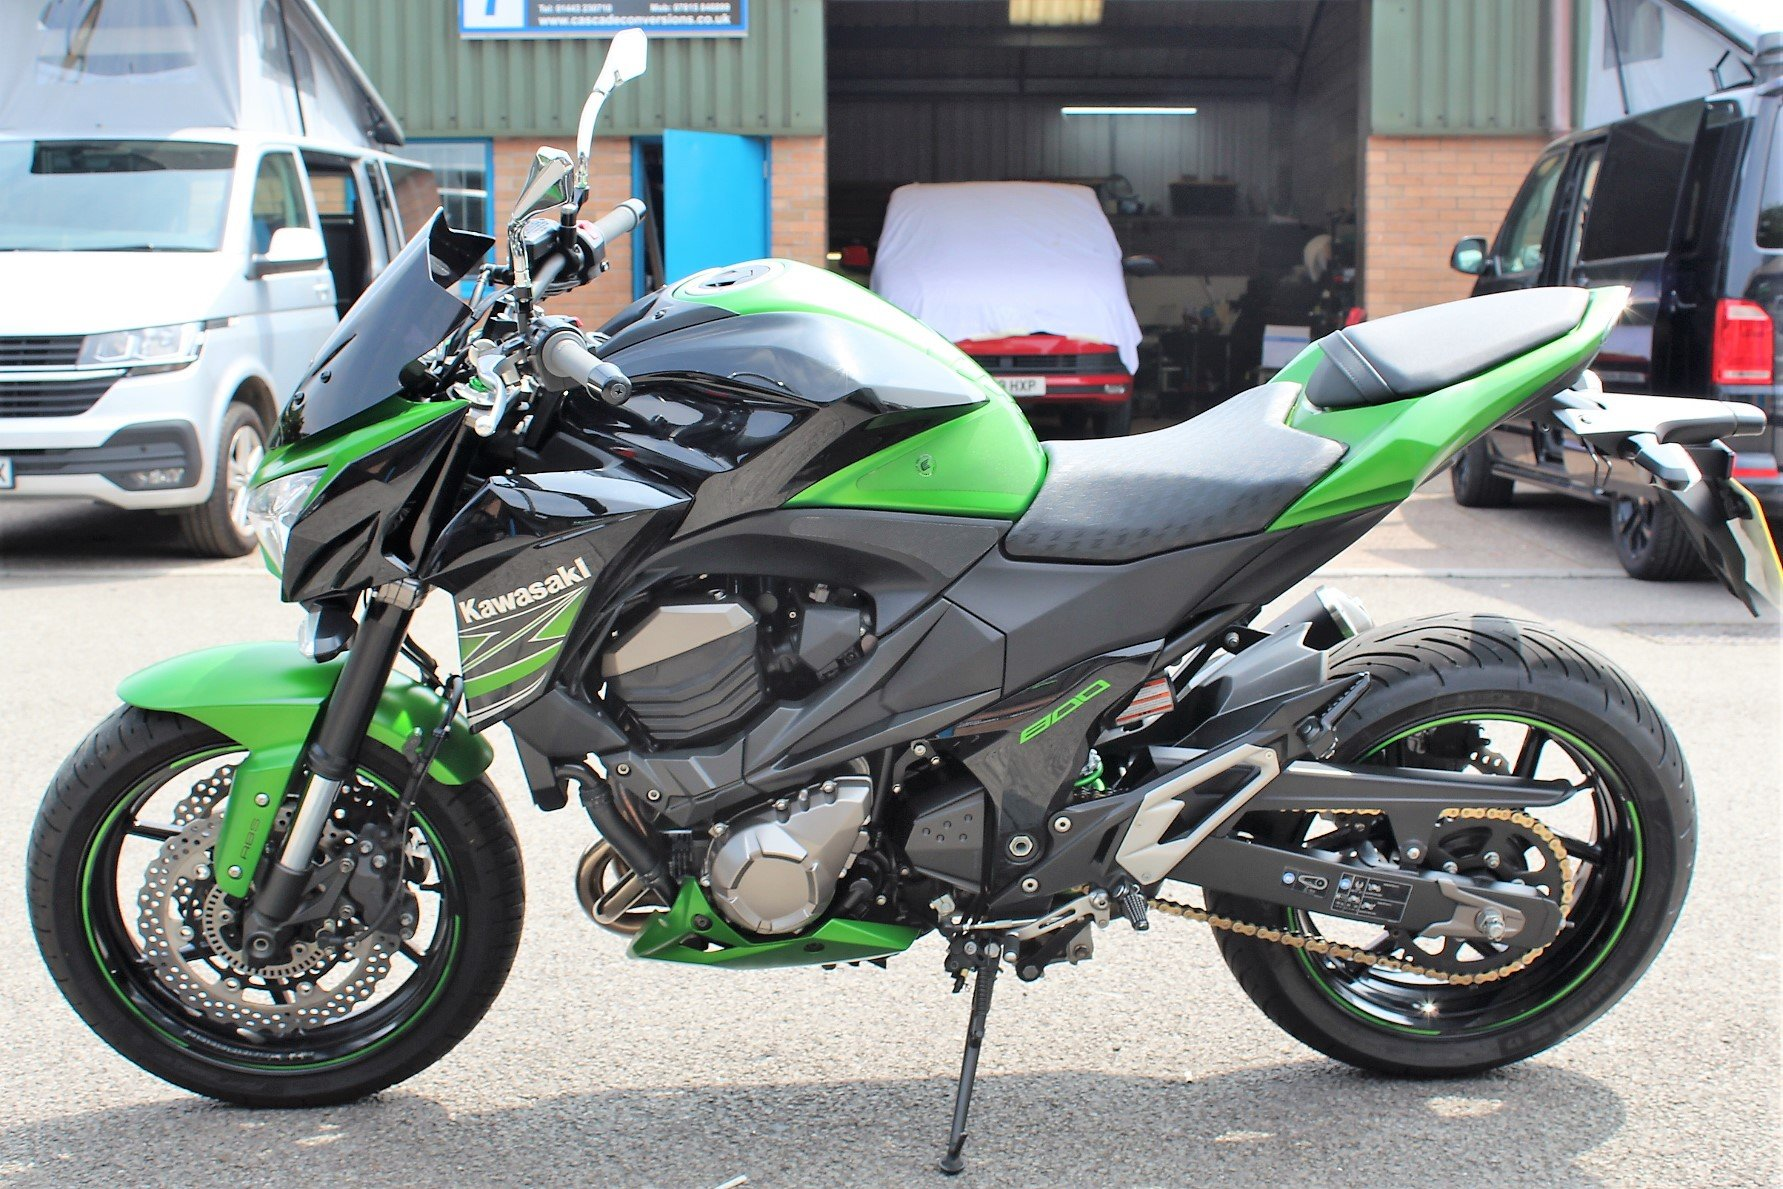 2015 15 Kawasaki Z800 ABS Naked Roadster For Sale (picture 4 of 6)